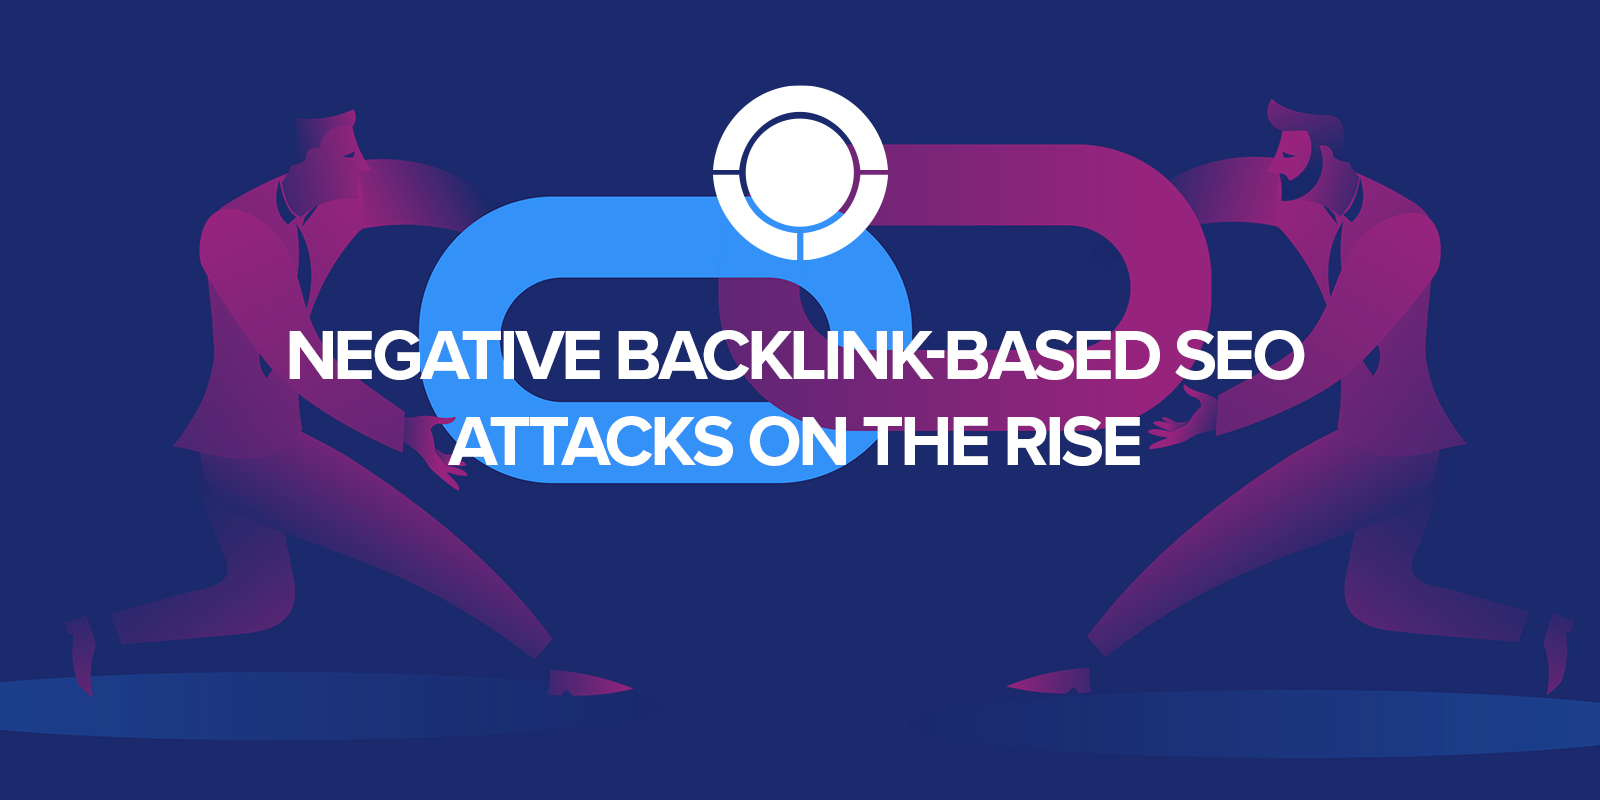 Negative Backlink-Based SEO Attacks on the Rise